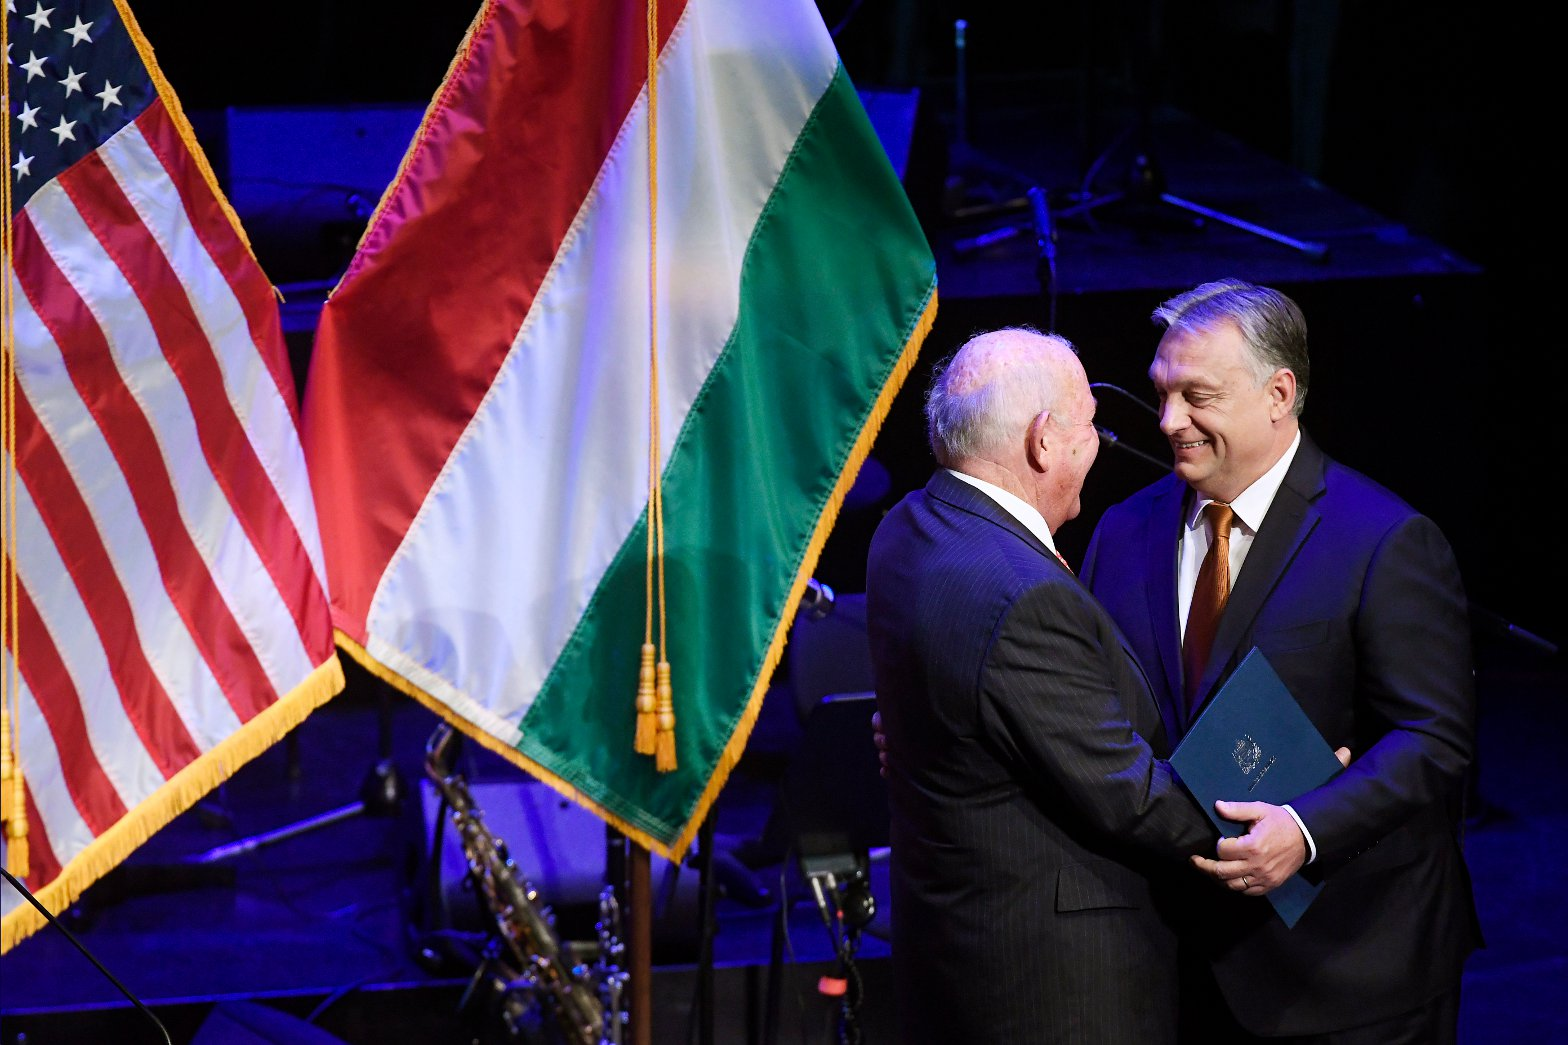 Video: PM Orbán Attended The US Embassy's Independence Day In Budapest